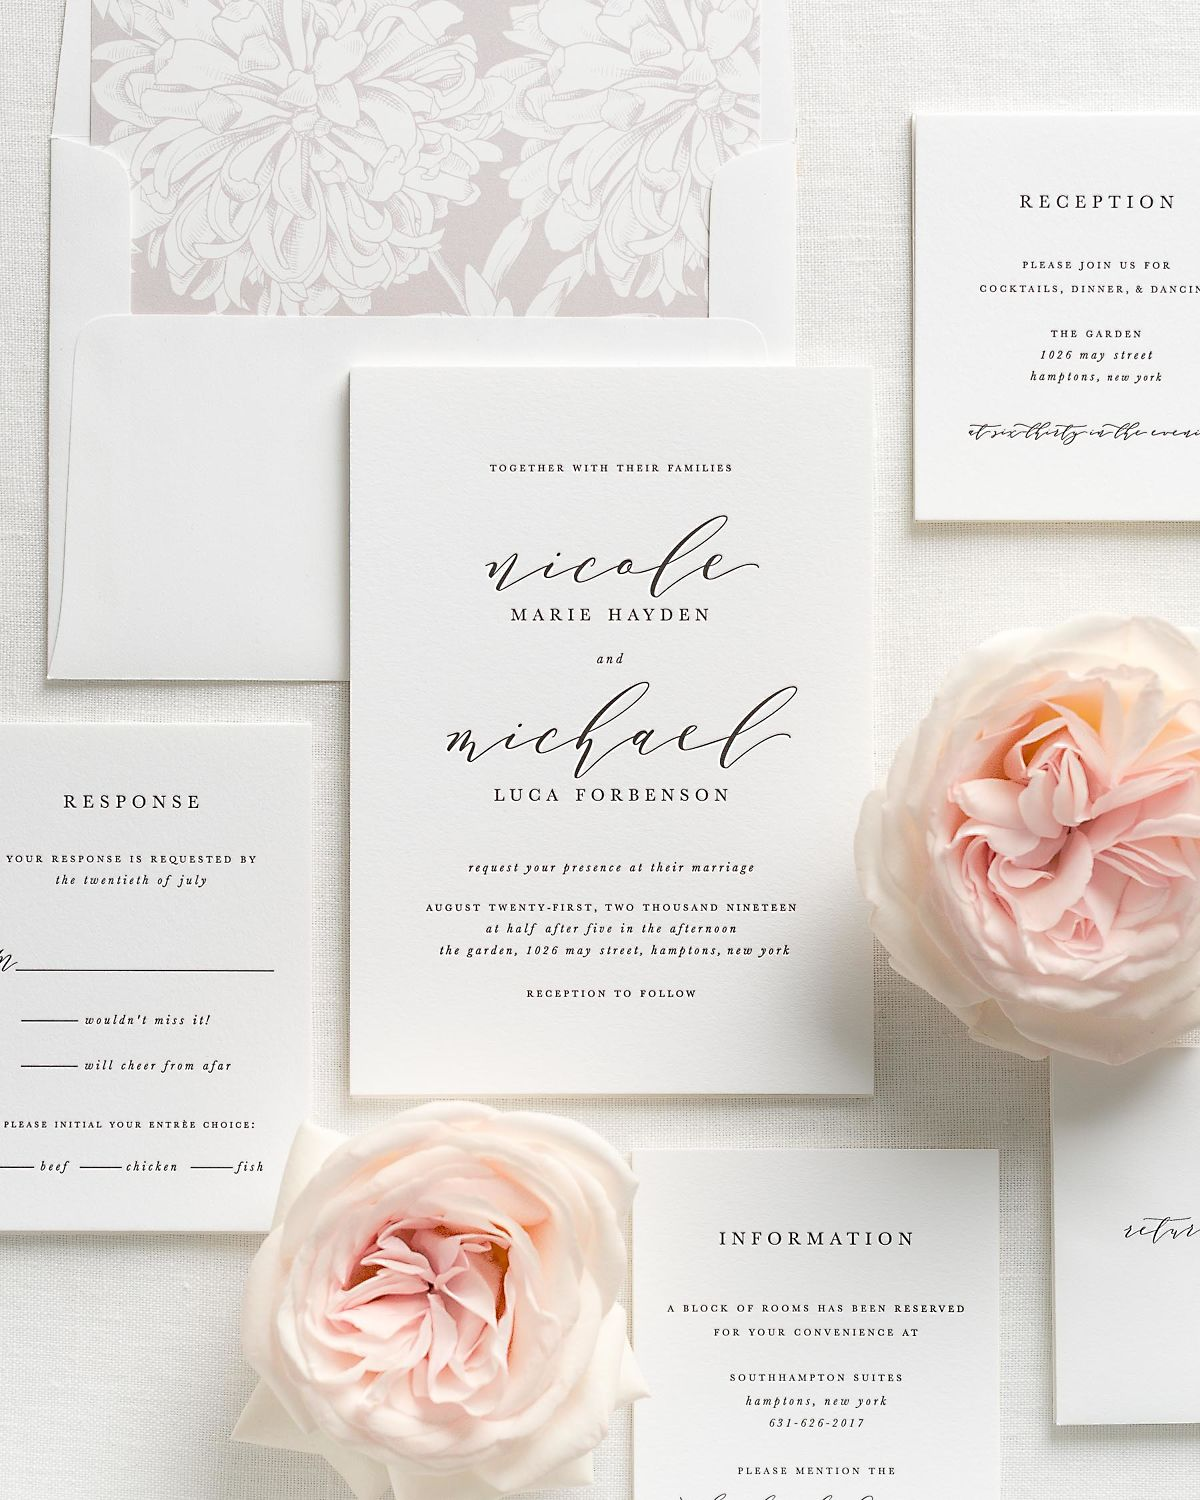 Letterpress Wedding Invitations with Sweet Pea Dahlias Envelope Liner and Matching Accessories